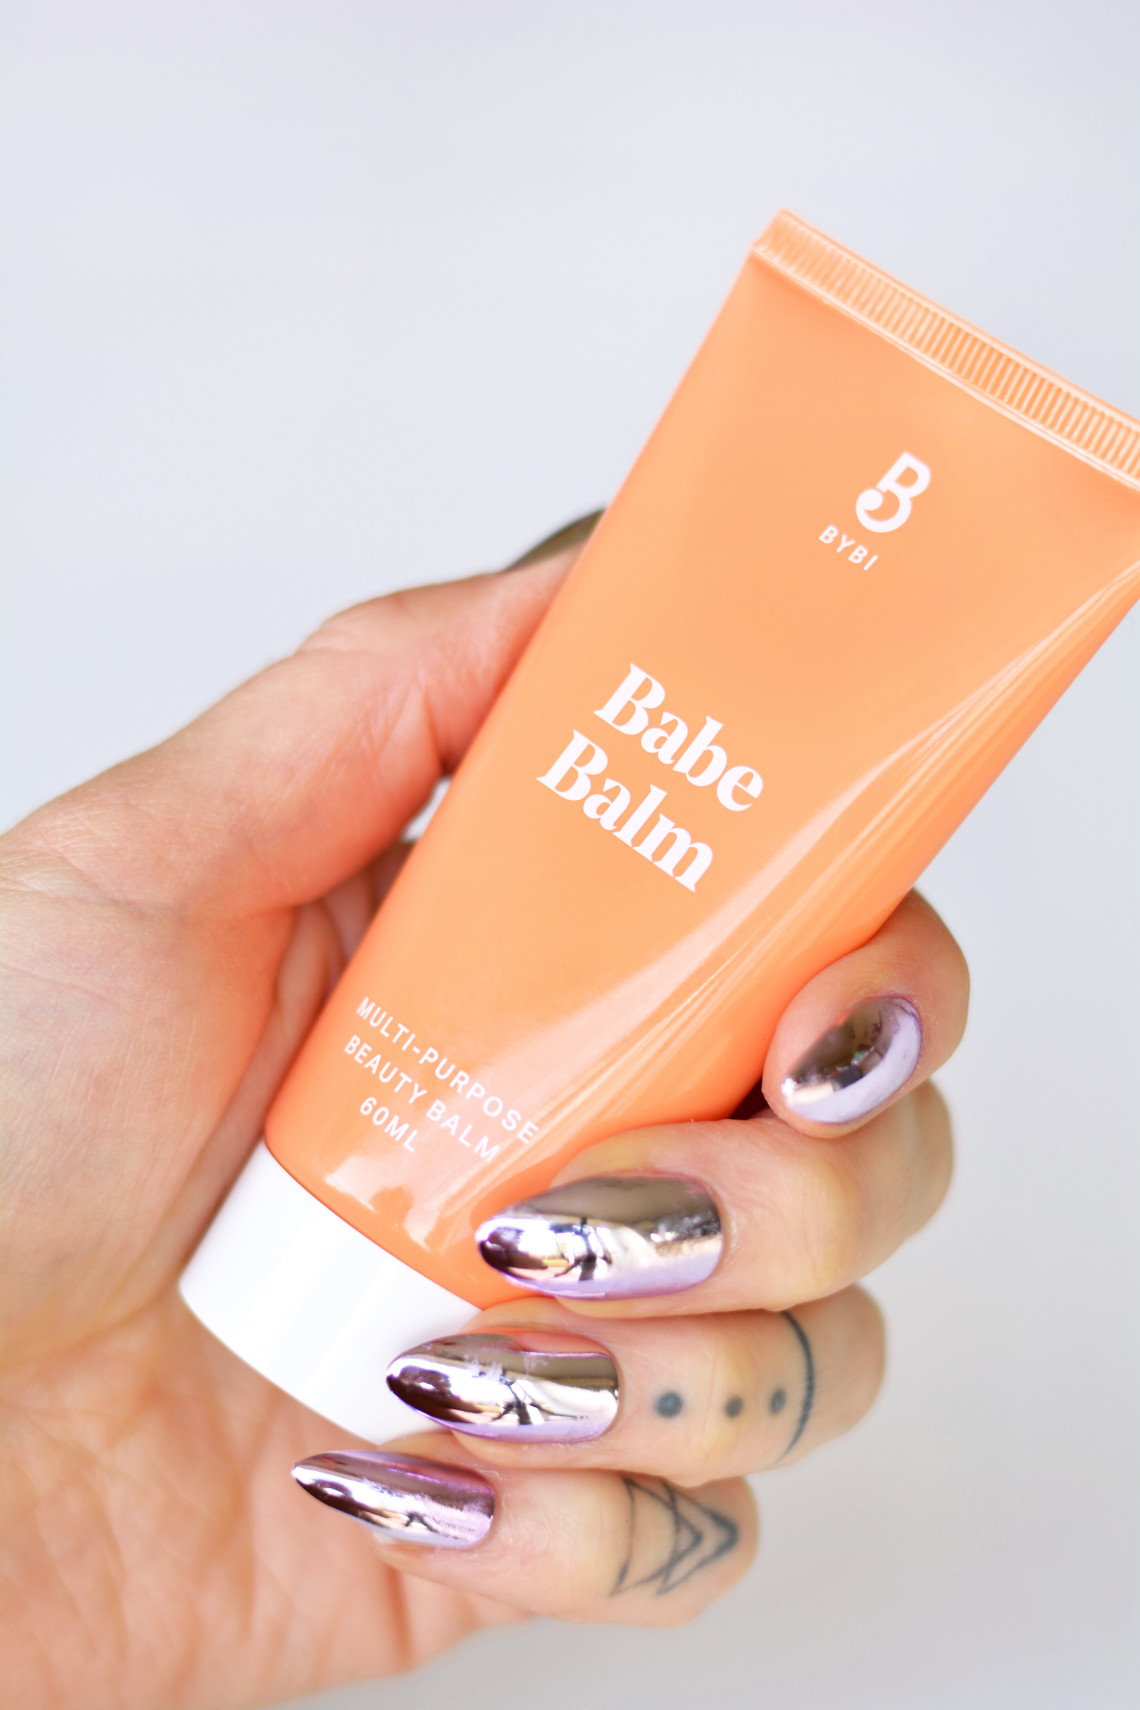 bybi-beauty-review-cruelty-free-vegan-6